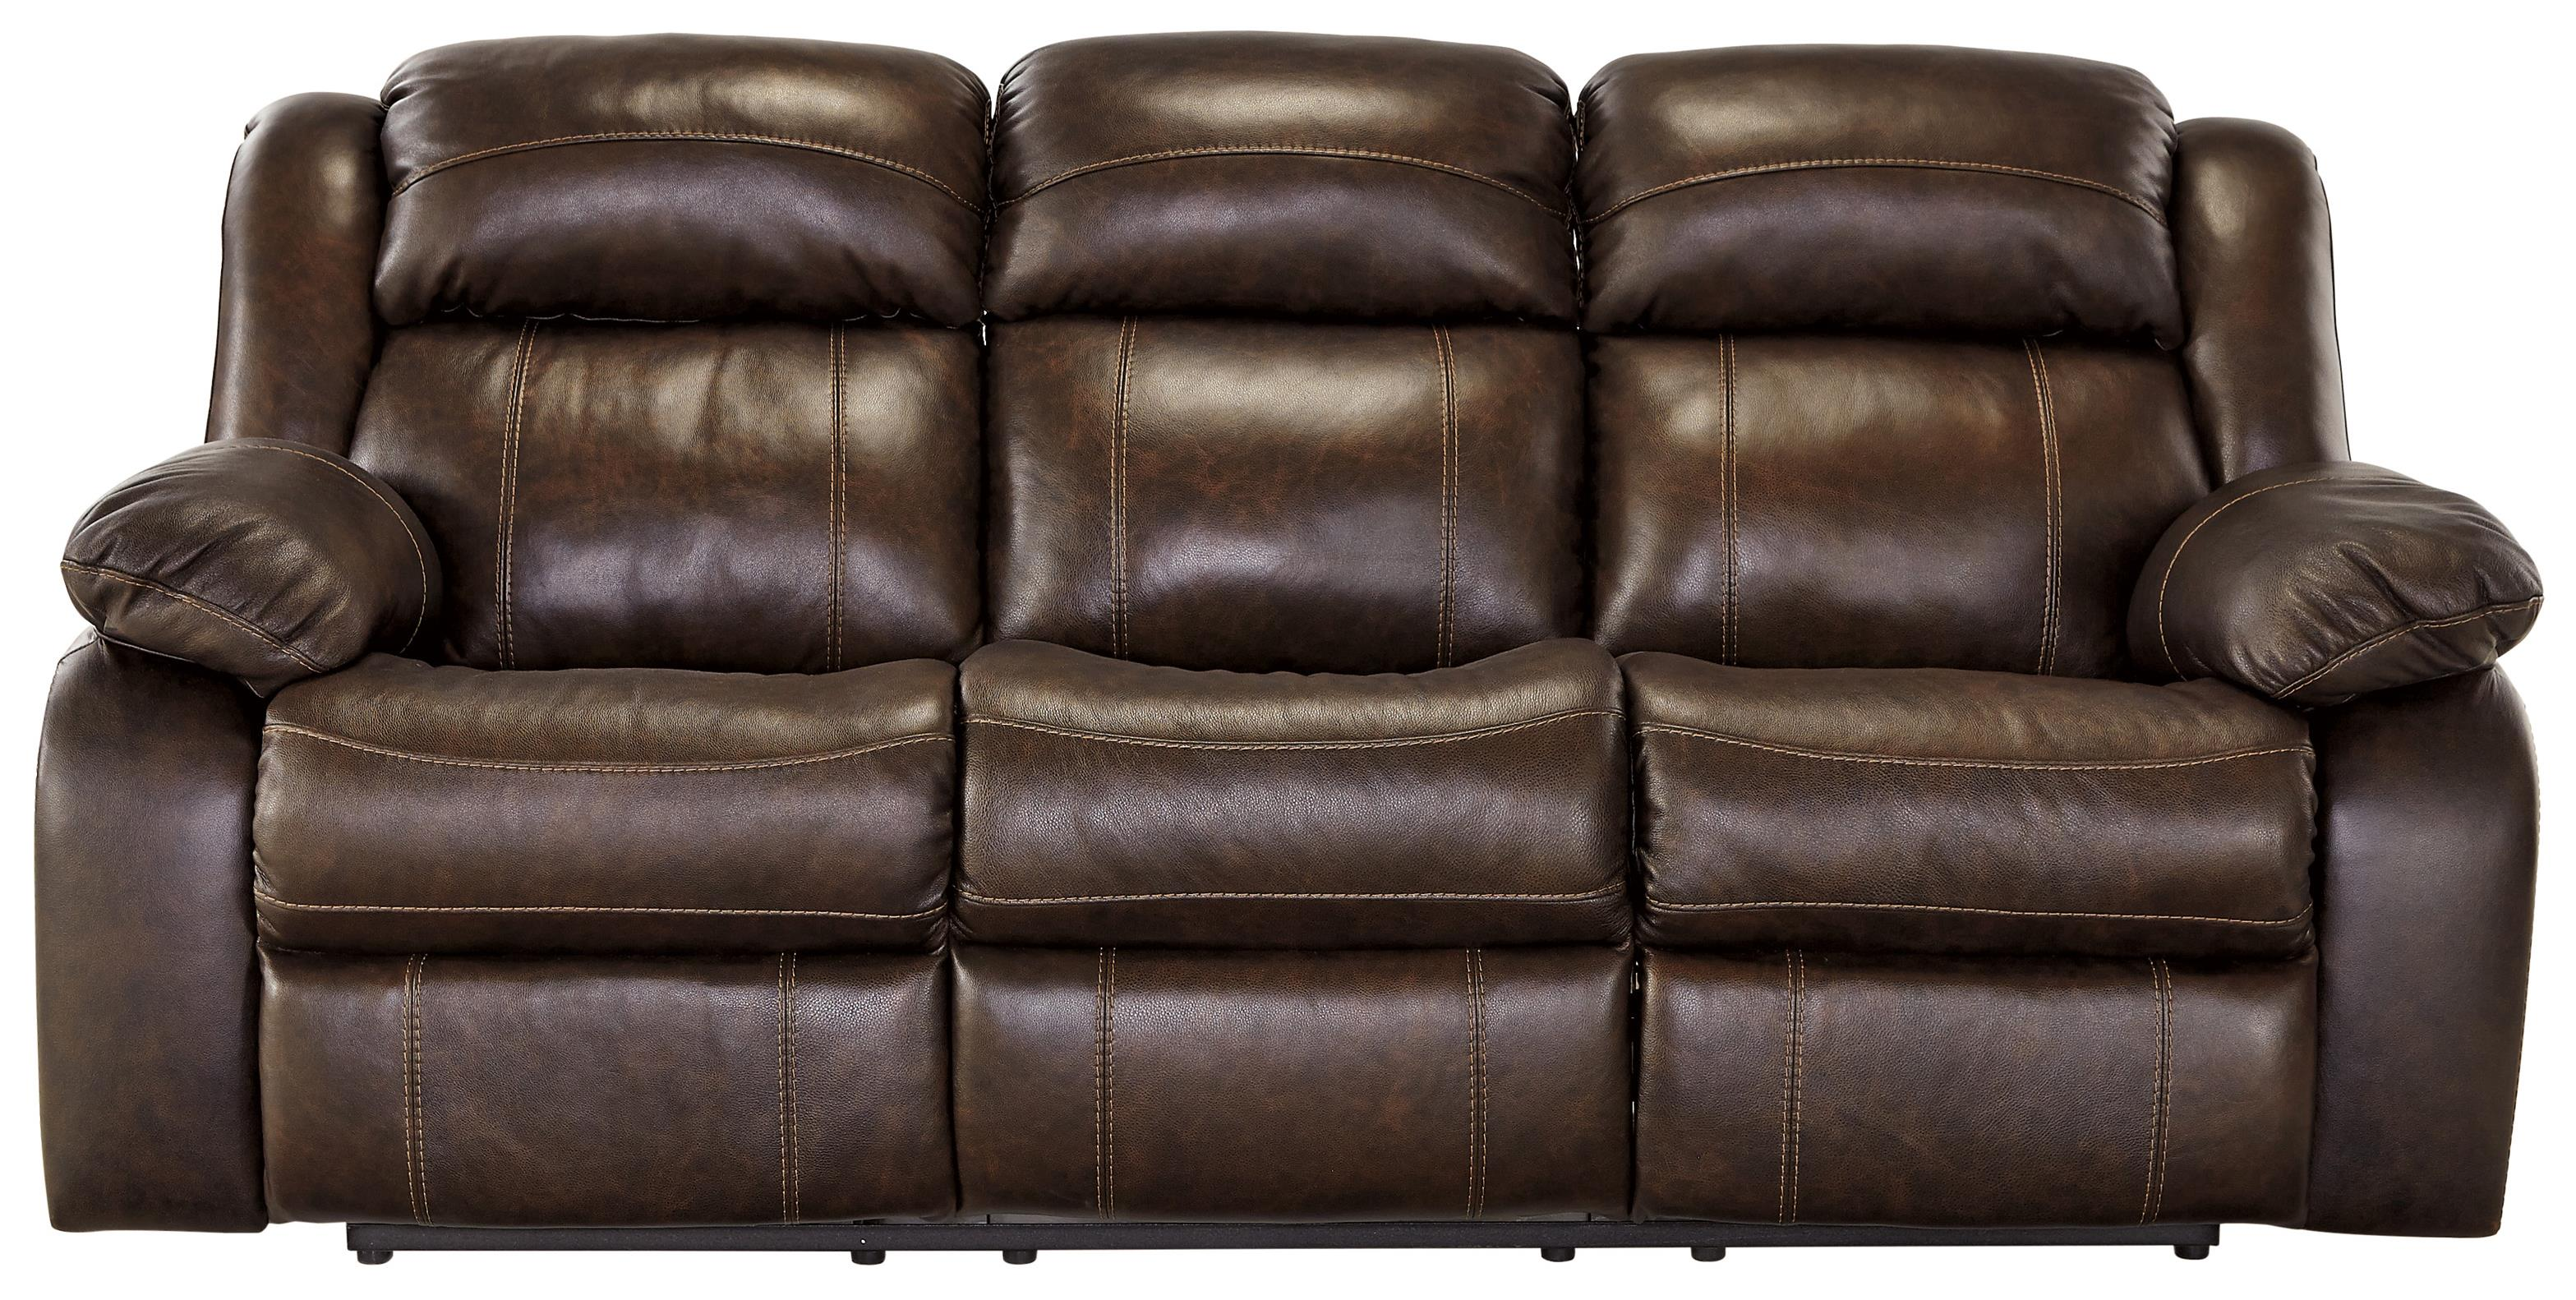 Signature Design by Ashley Branton Reclining Sofa - Item Number: U7190188